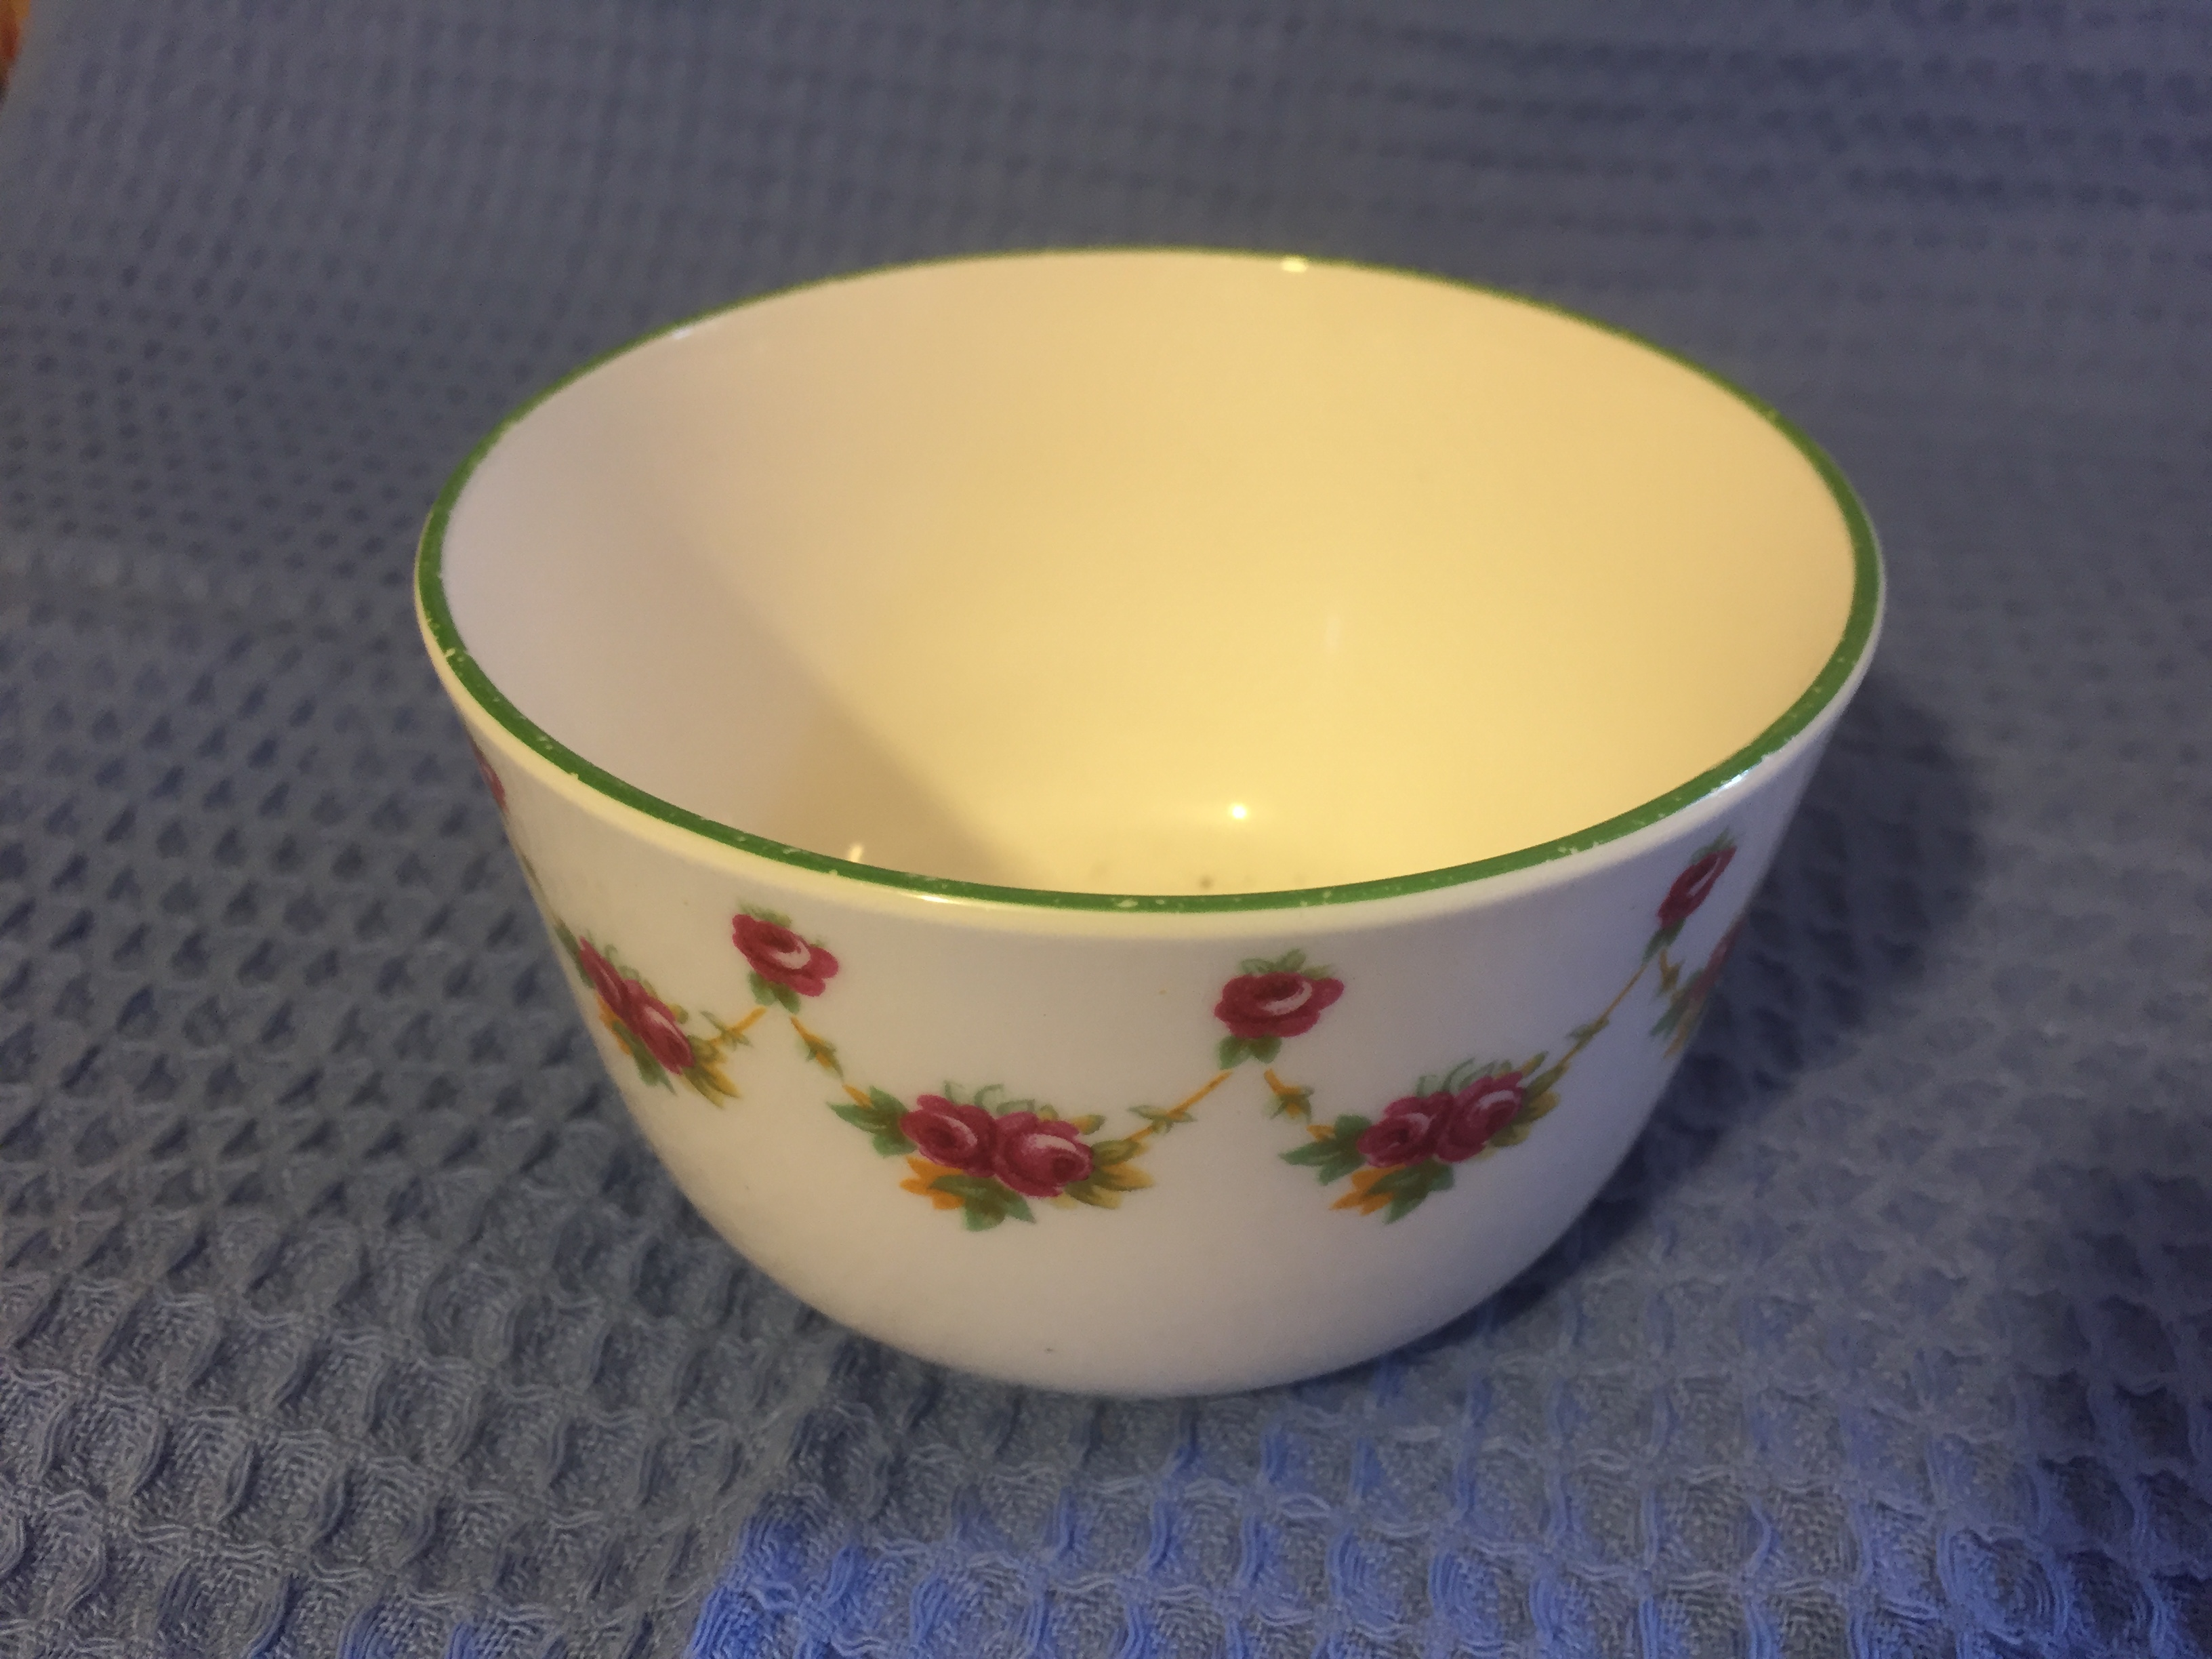 SUGAR BOWL IN DECORATIVE COMPANY PATTERN FROM THE UNION CASTLE LINE